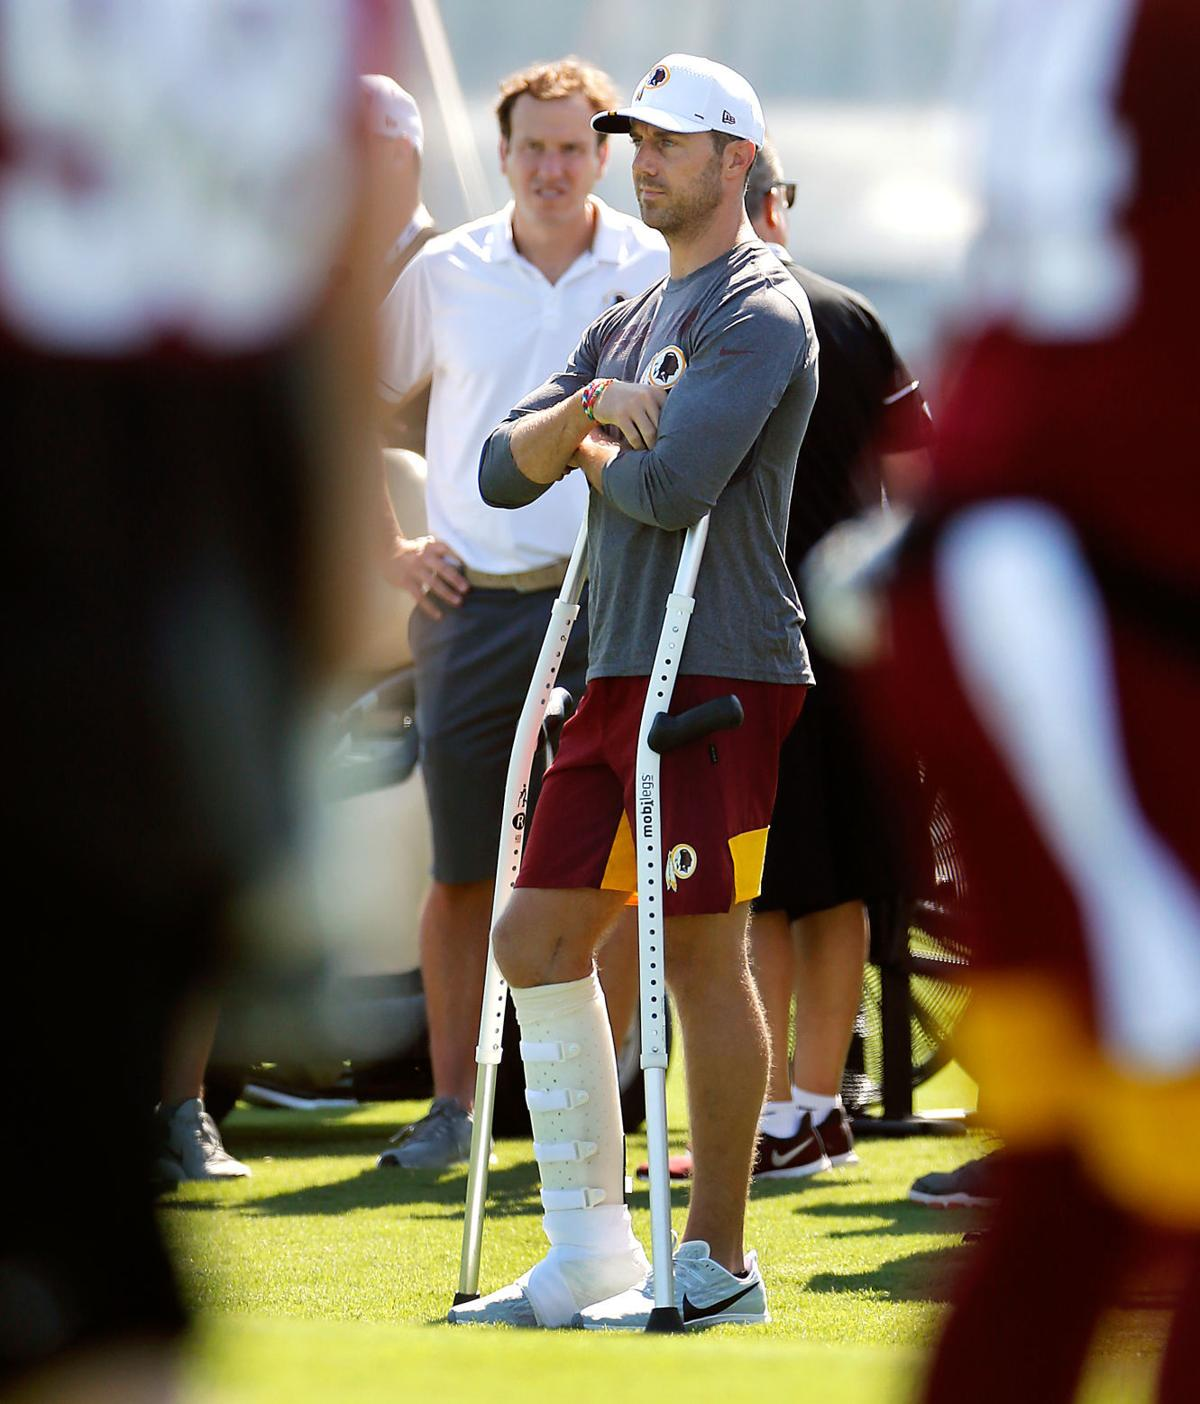 Espn S Alex Smith Documentary Pulls No Punches In Showing A Gruesome Injury And Courageous Recovery Professional Sports Richmond Com